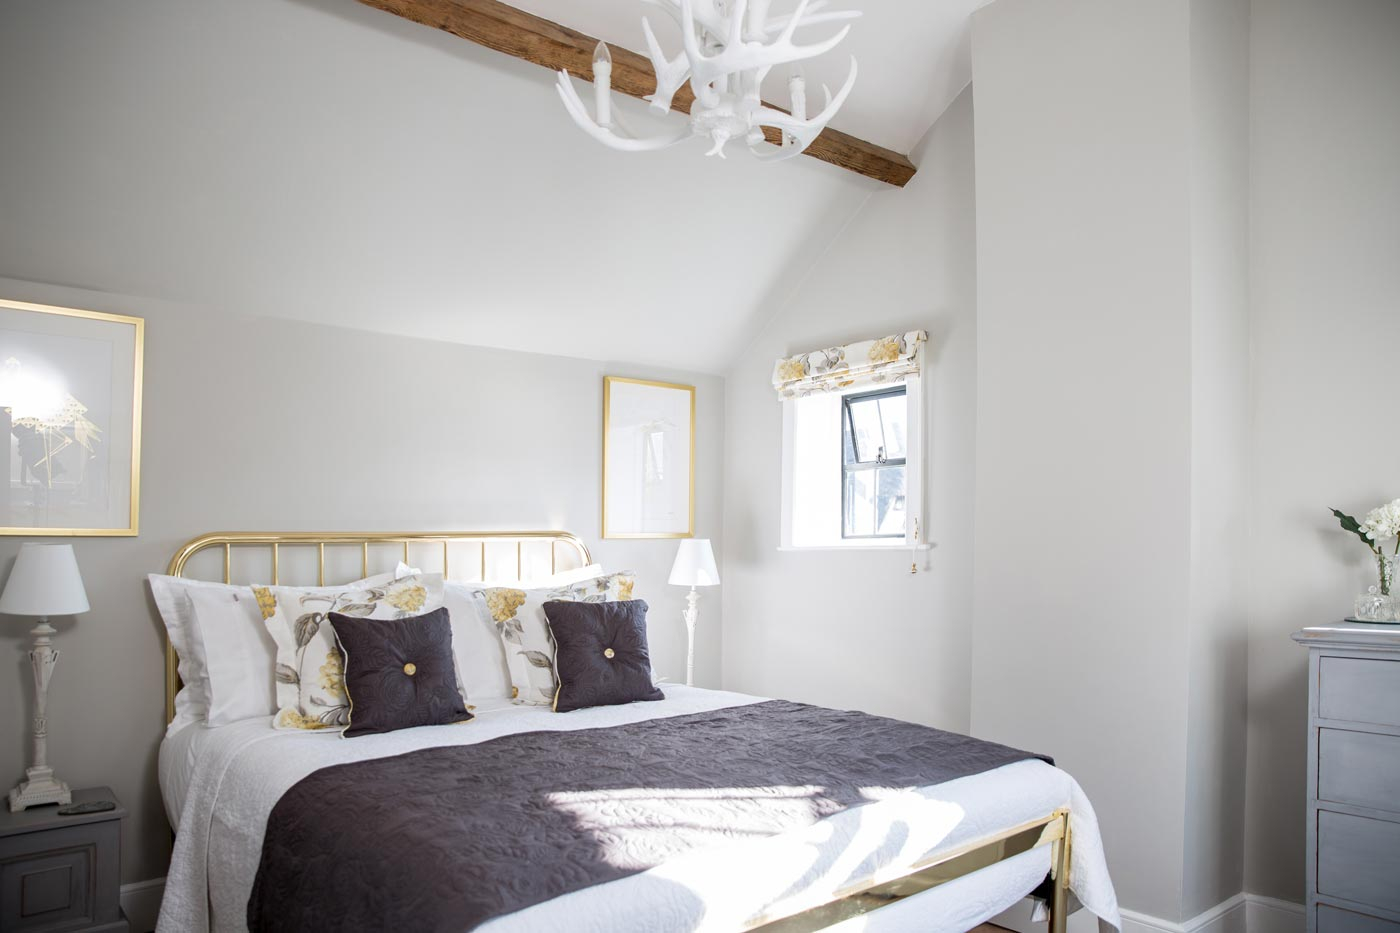 Master Bedroom - The Cottage Master bedroom has an en-suite shower room with warm towels and a thermostatic shower.